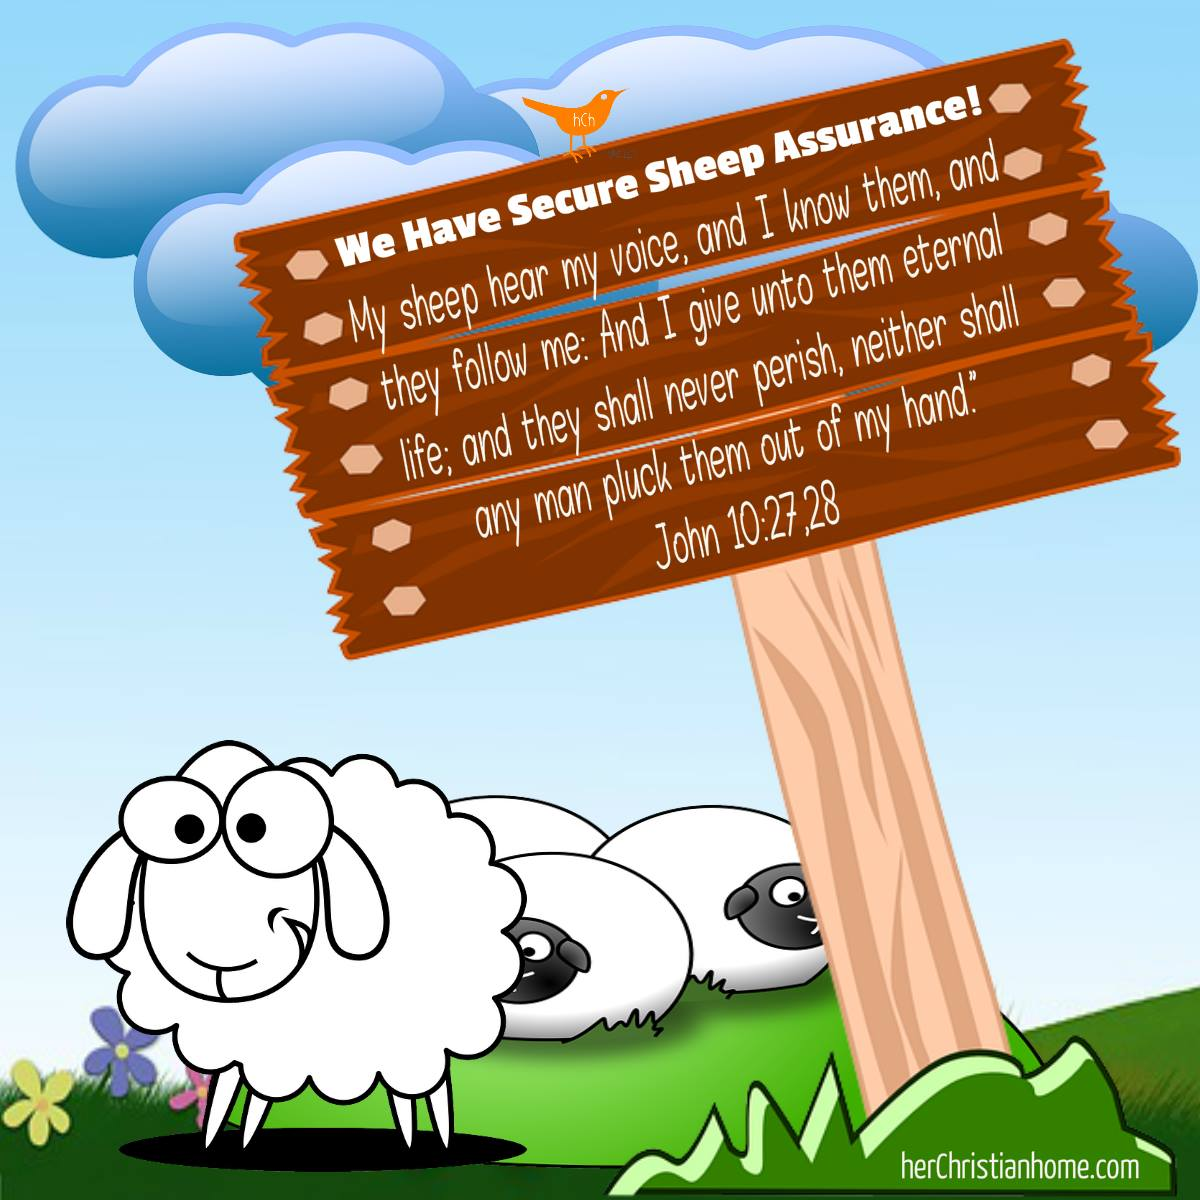 My sheep hear my voice John 10:27, 28 kjv #sheep #security #bibleverses